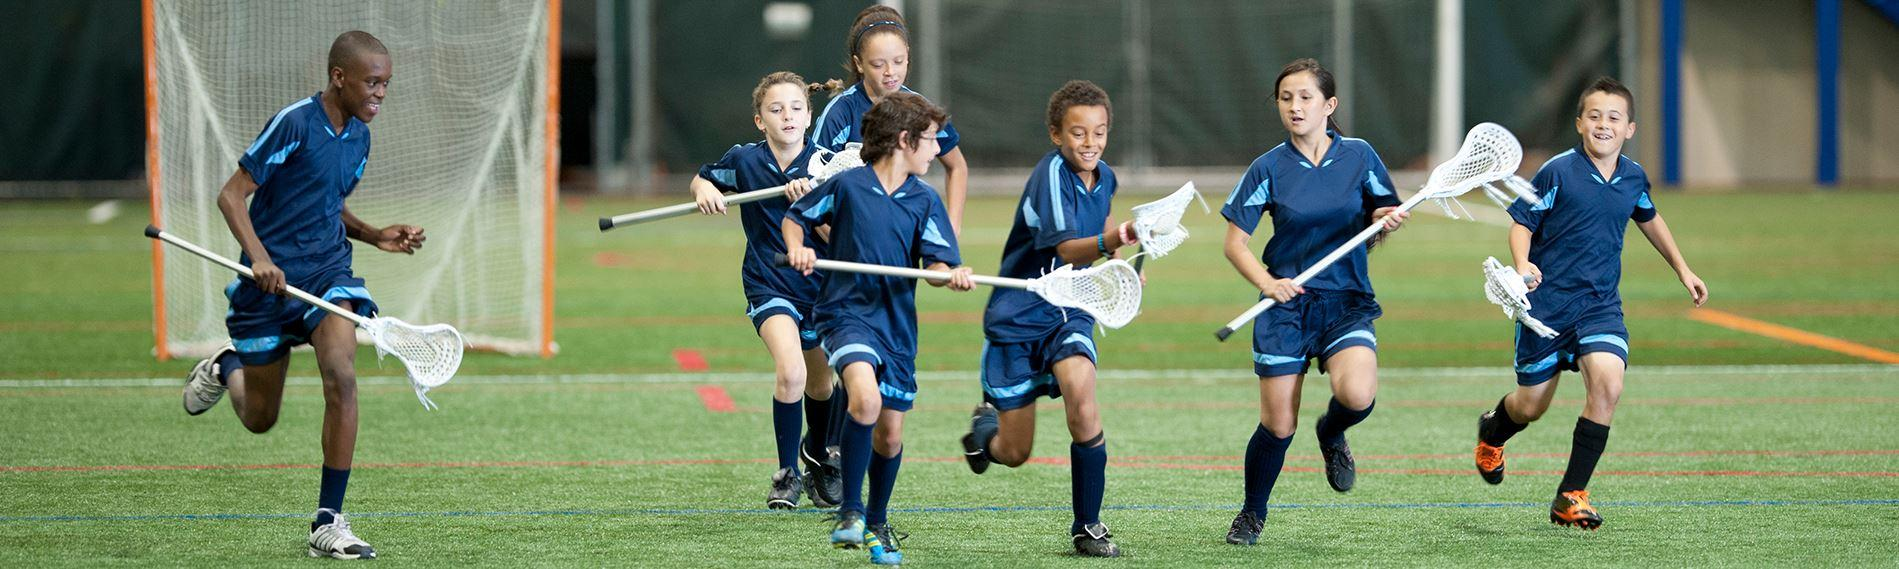 Pay to Play: Planning for Your Child's Extracurricular Activities Thumbnail